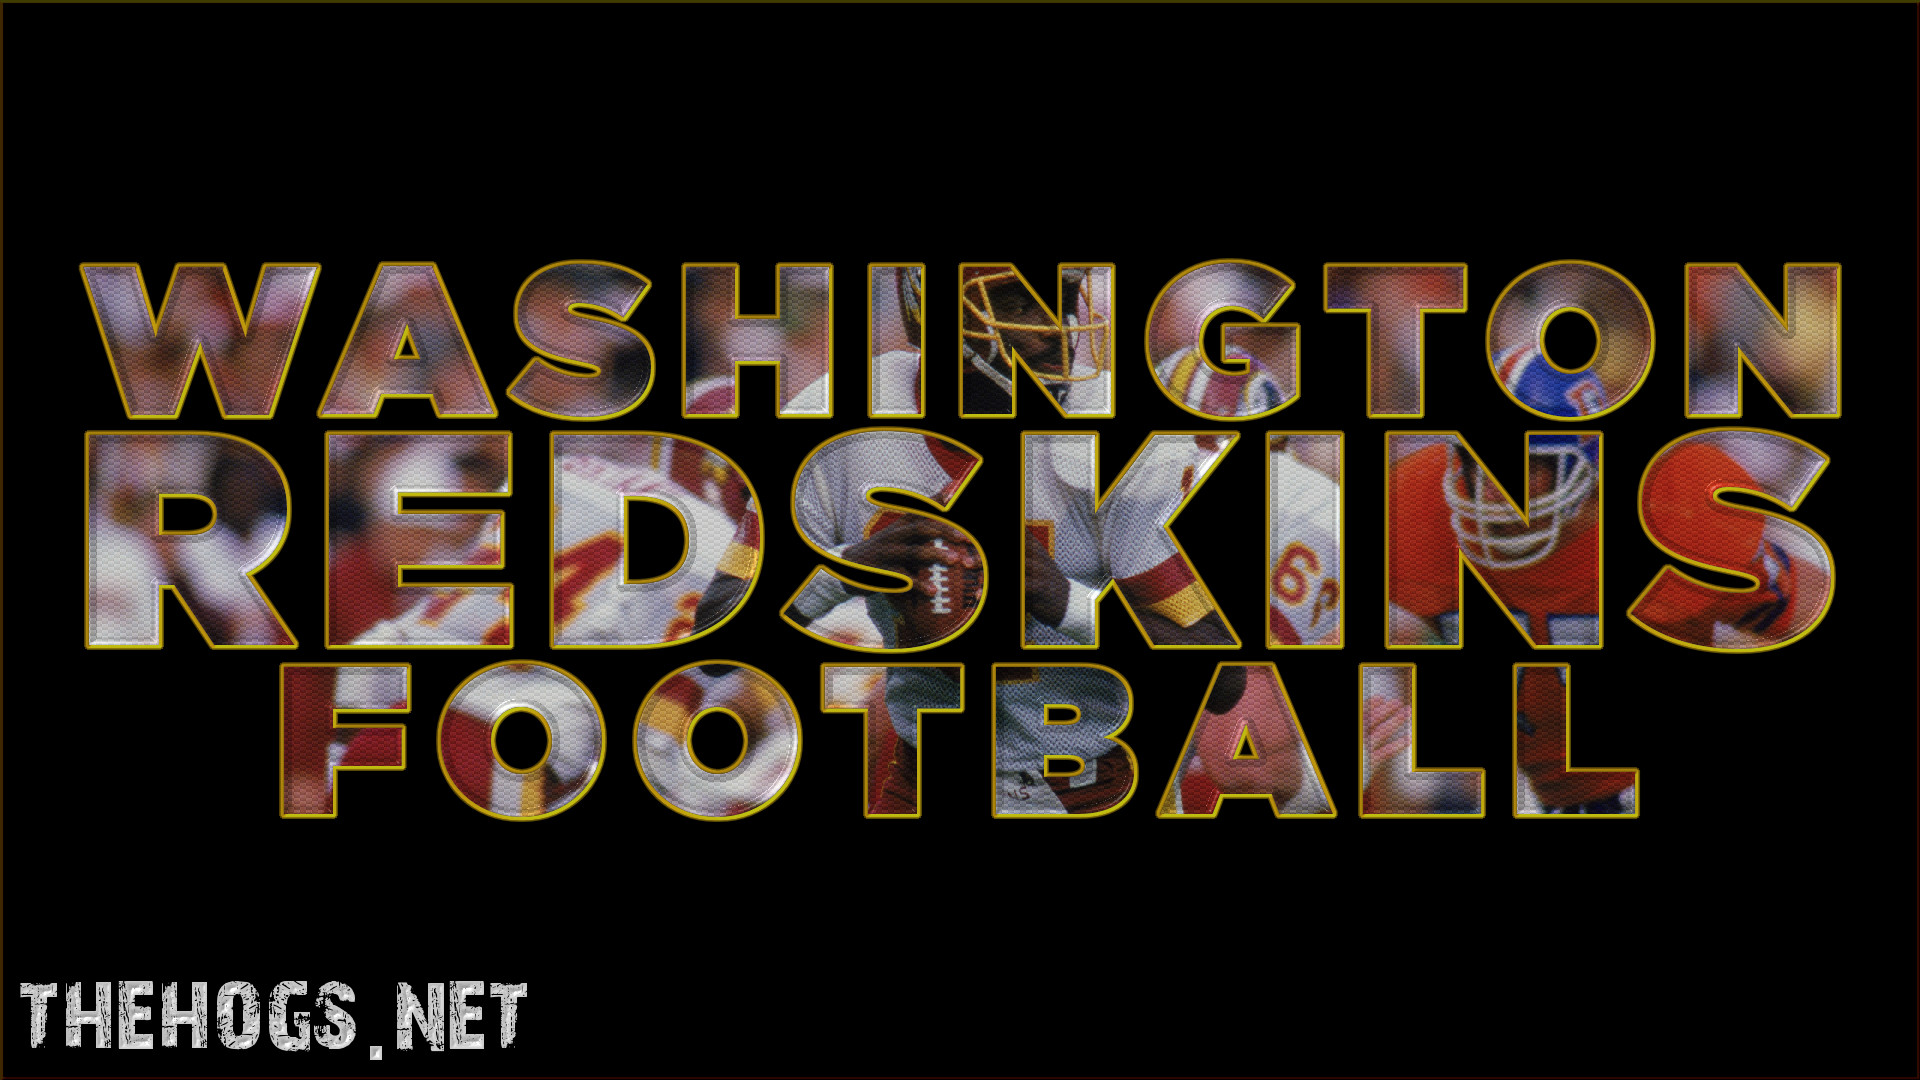 1920x1080 Washington Redskins Football